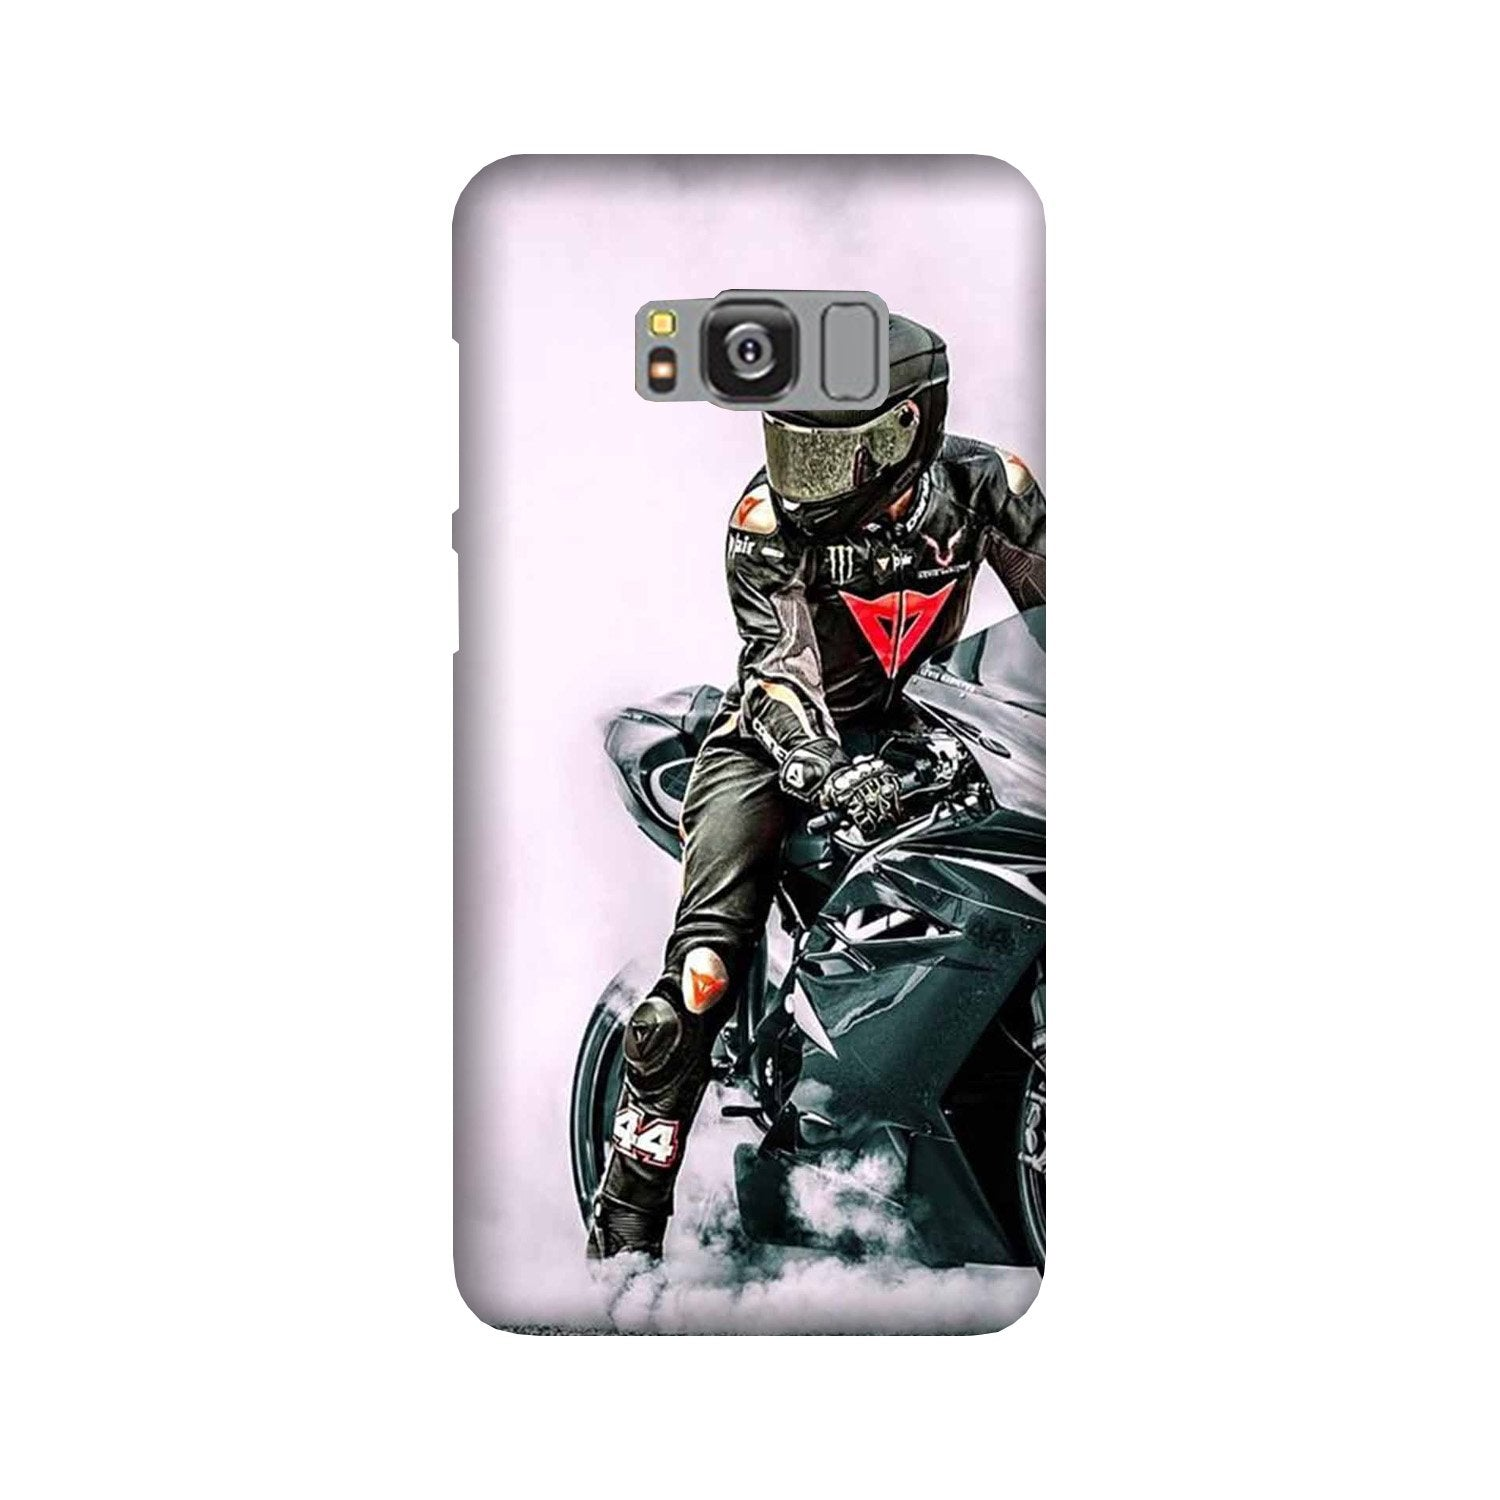 Biker Mobile Back Case for Galaxy S8  (Design - 383)